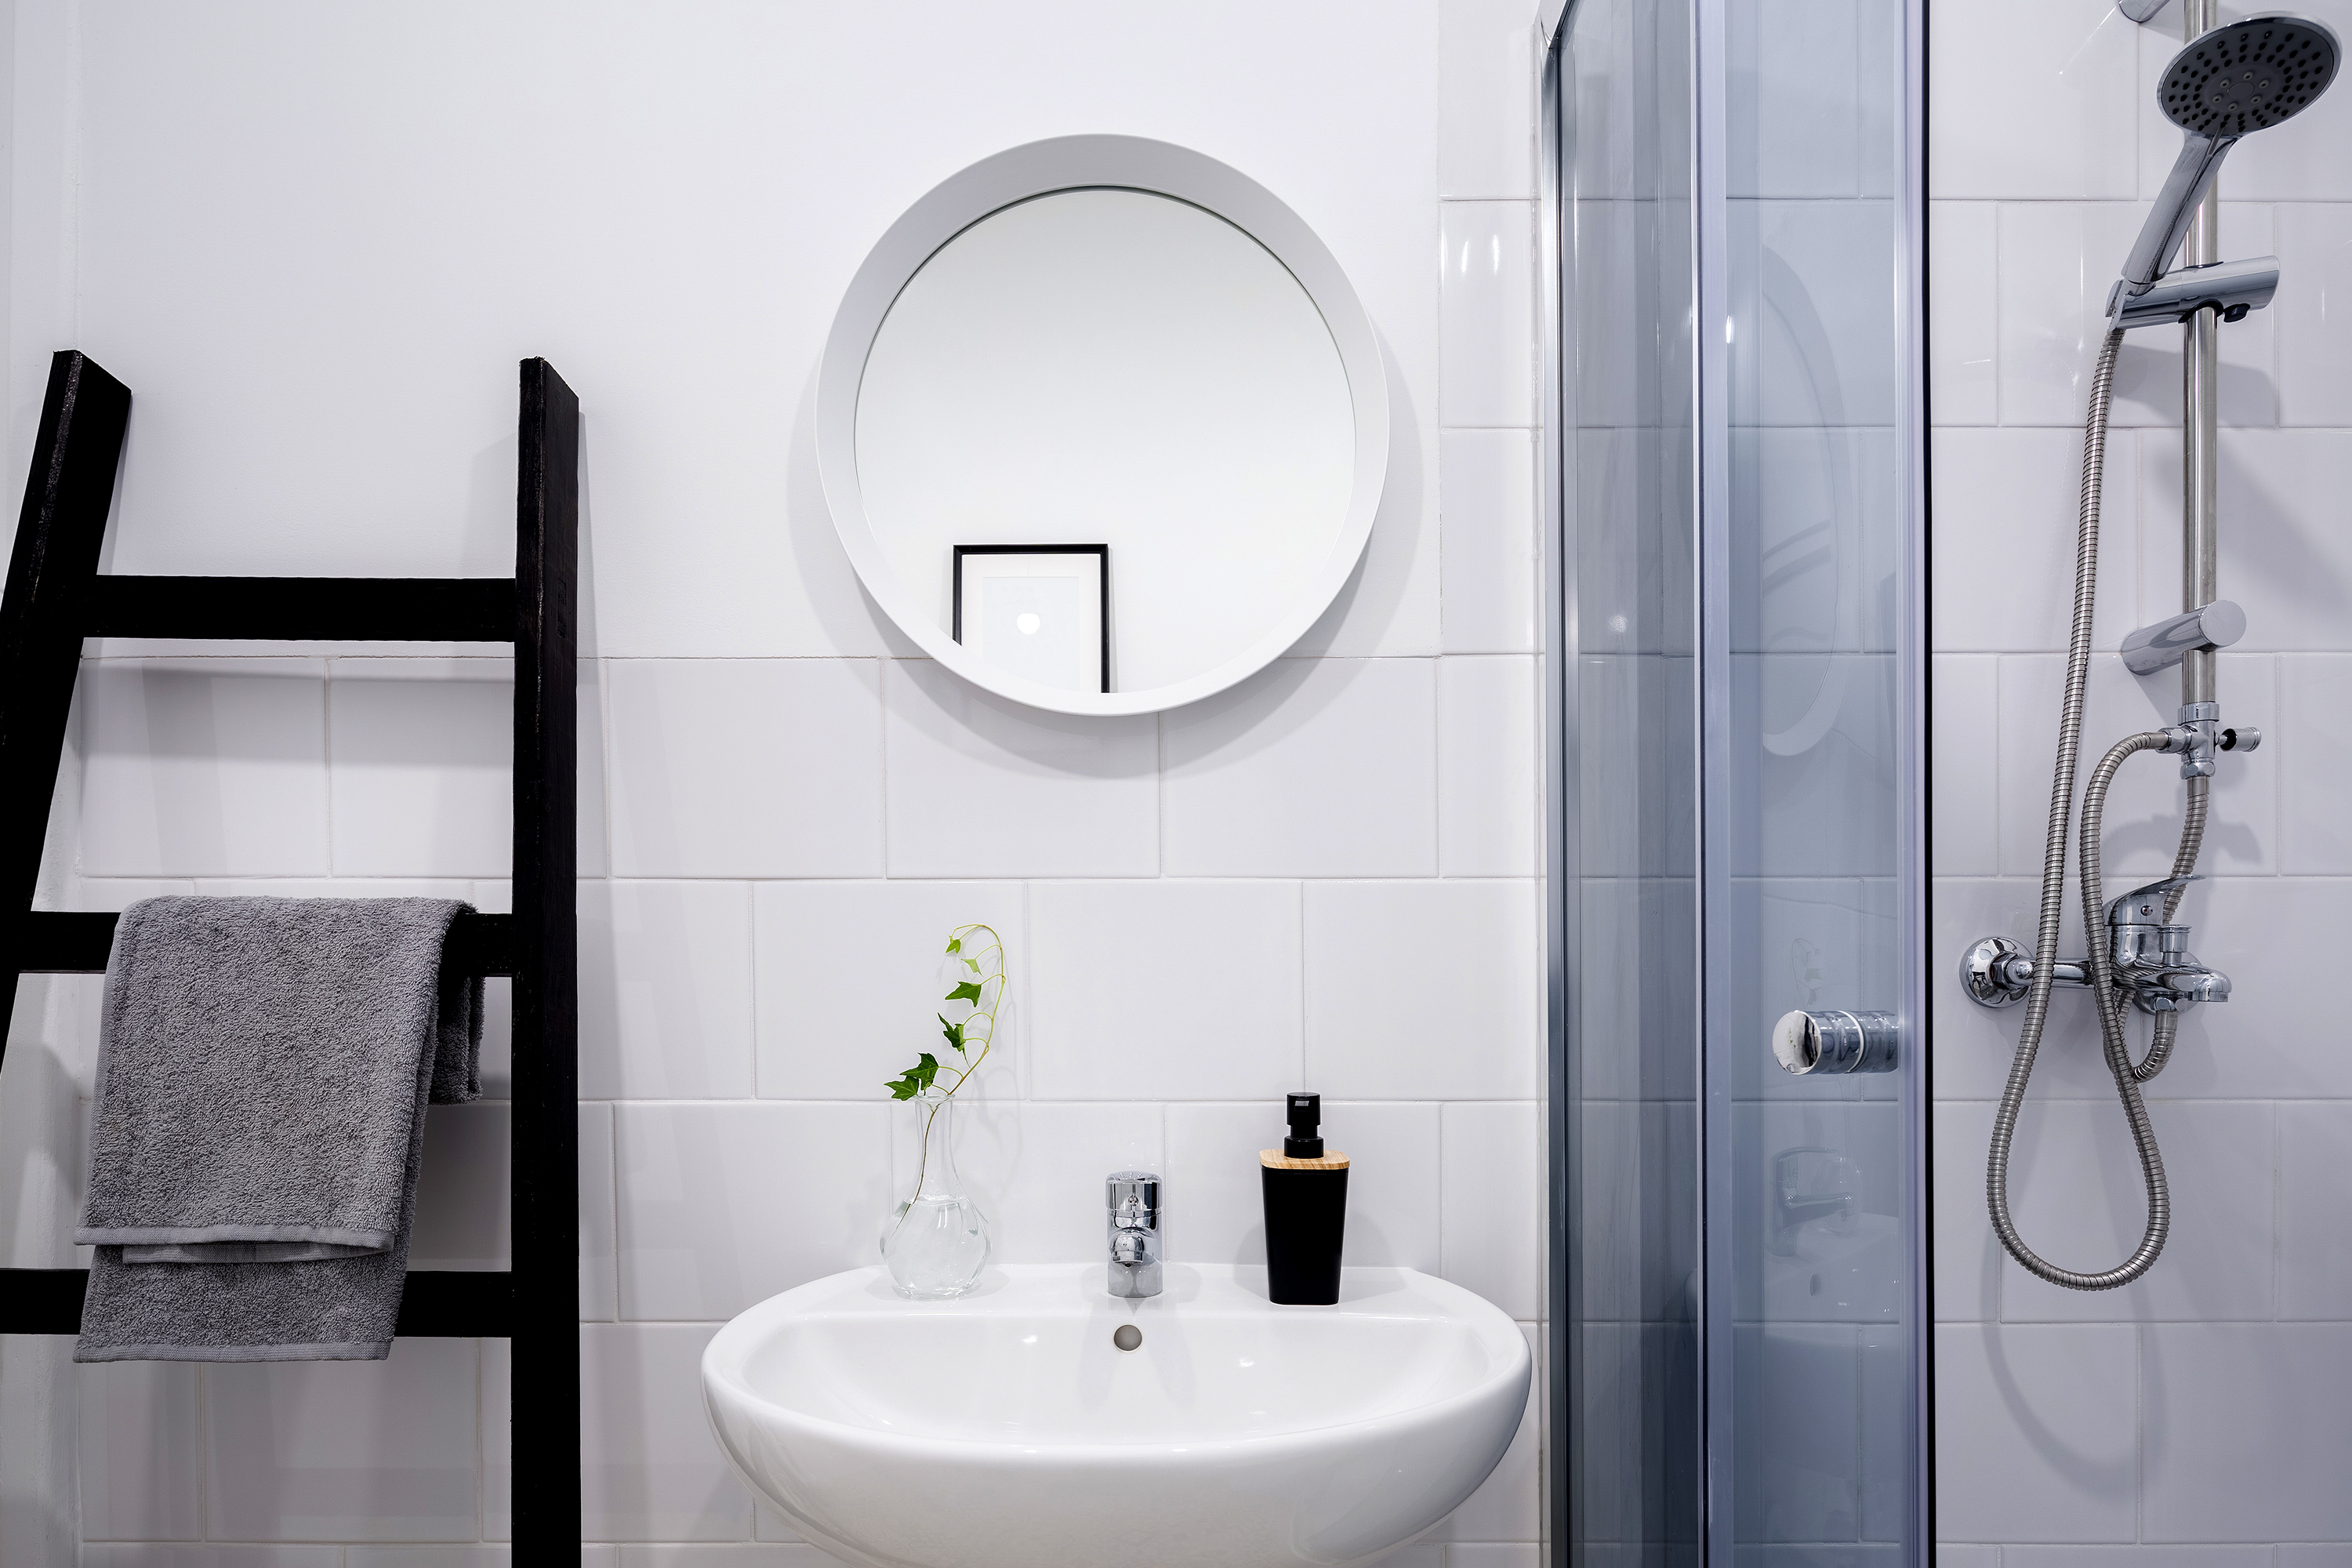 Small, bright bathroom with sink and shower.